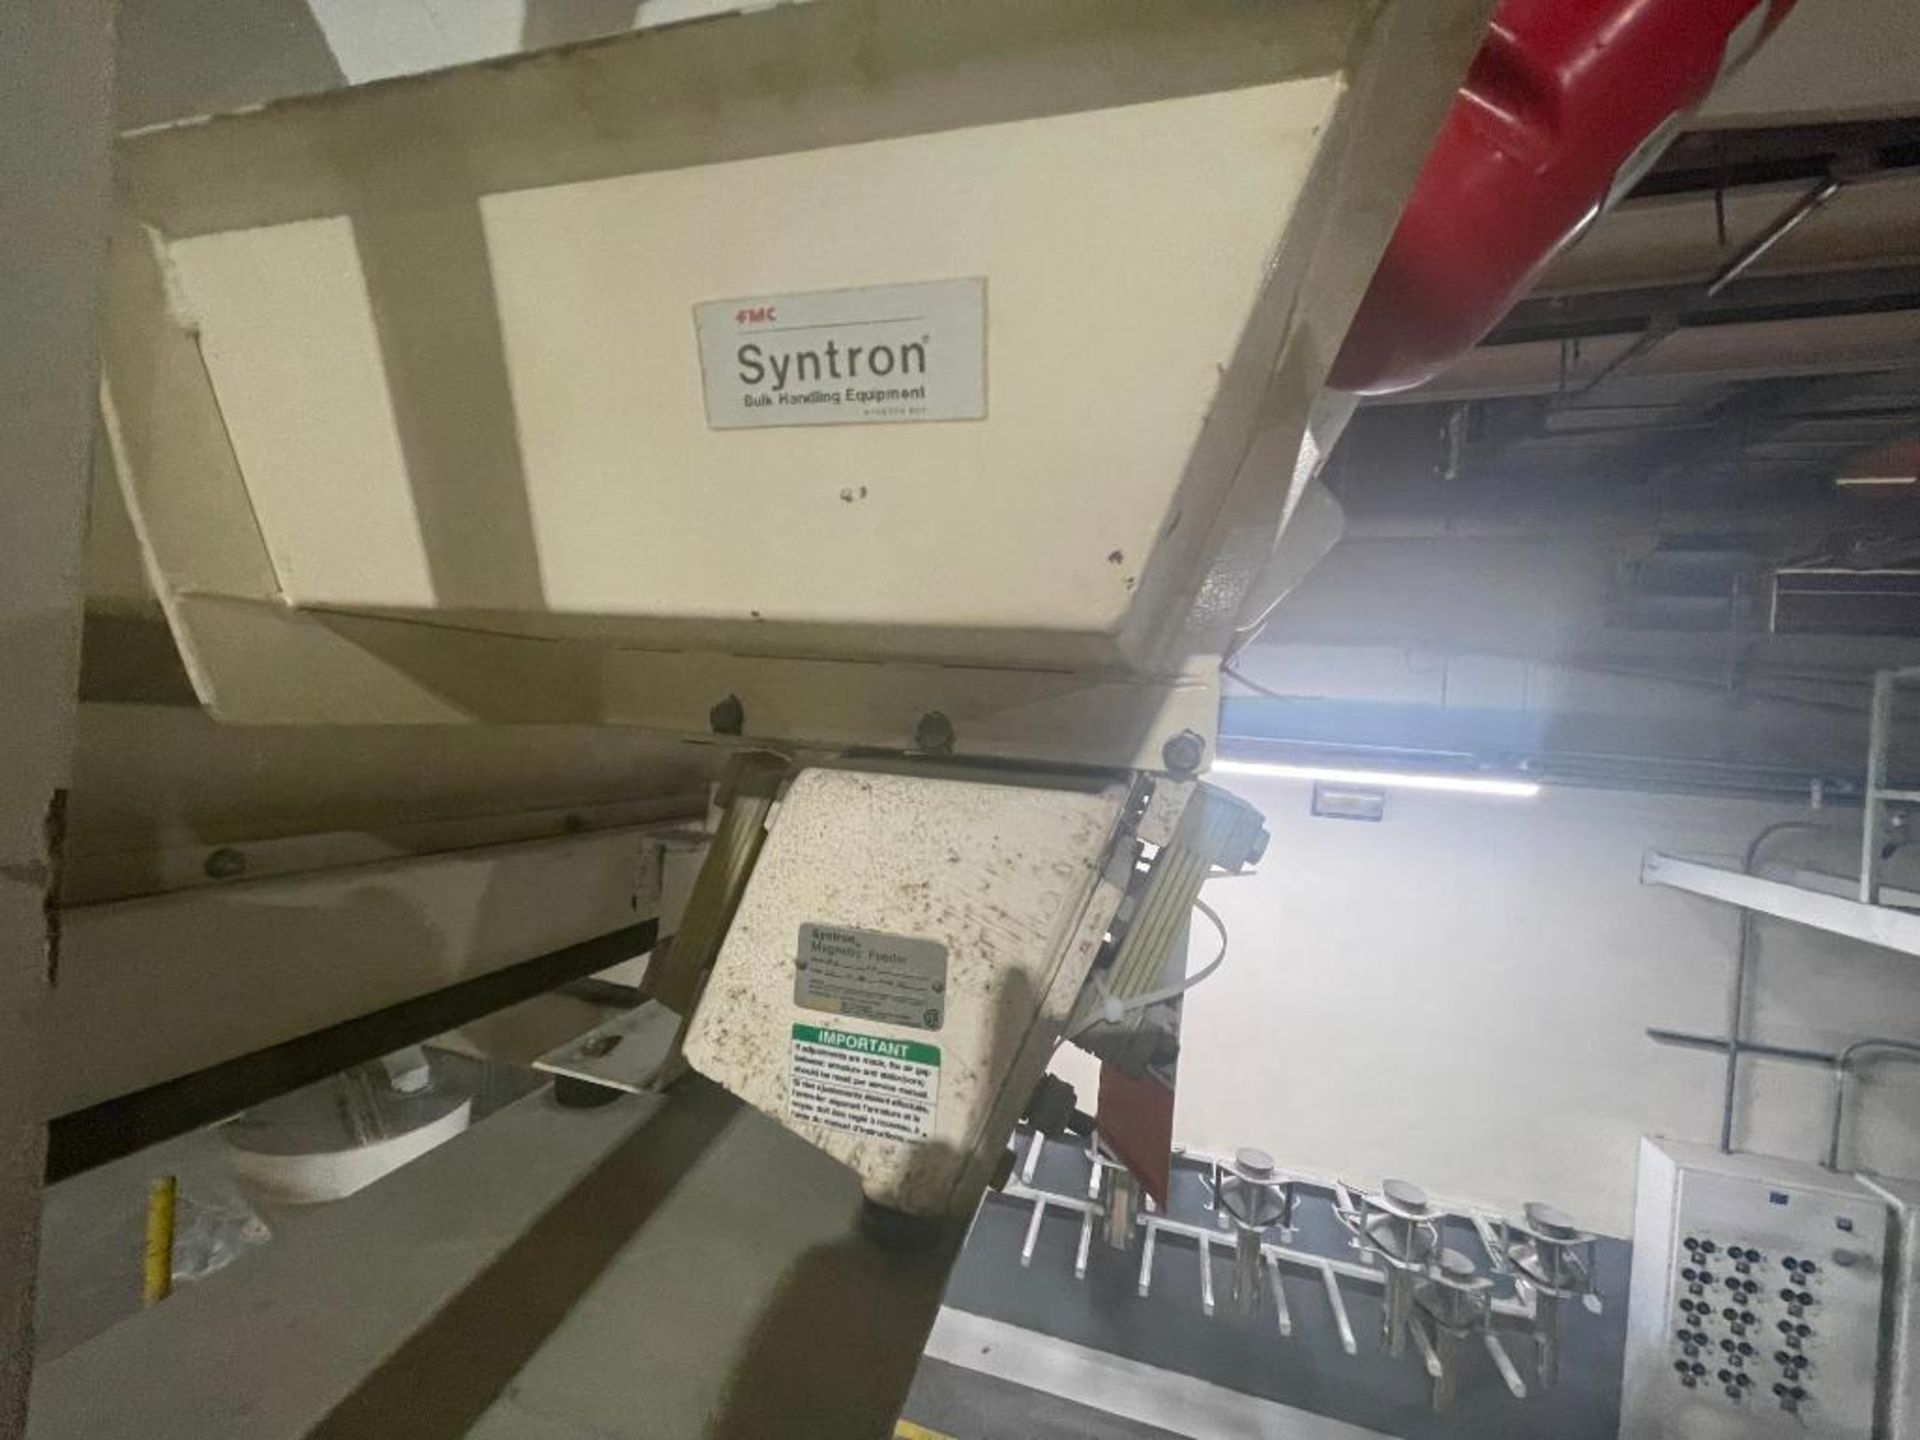 Aseeco 5-bin blending system with 5 Syntron vibratory feeders on bottom - Image 9 of 12